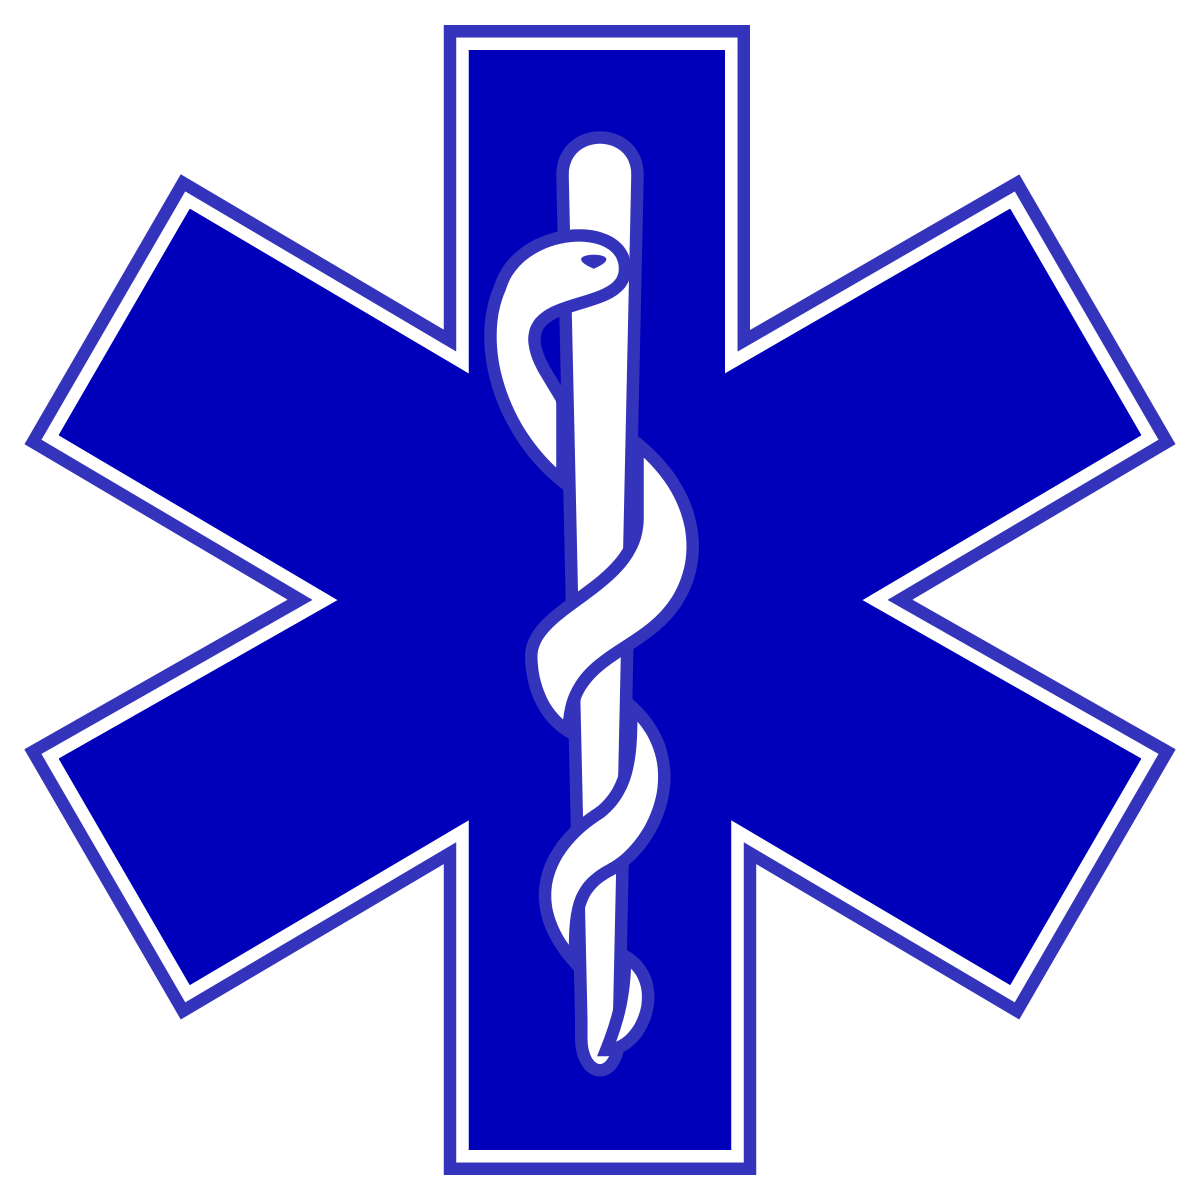 First responders clipart with a cross clipart free stock Emergency medical technician - Wikipedia clipart free stock